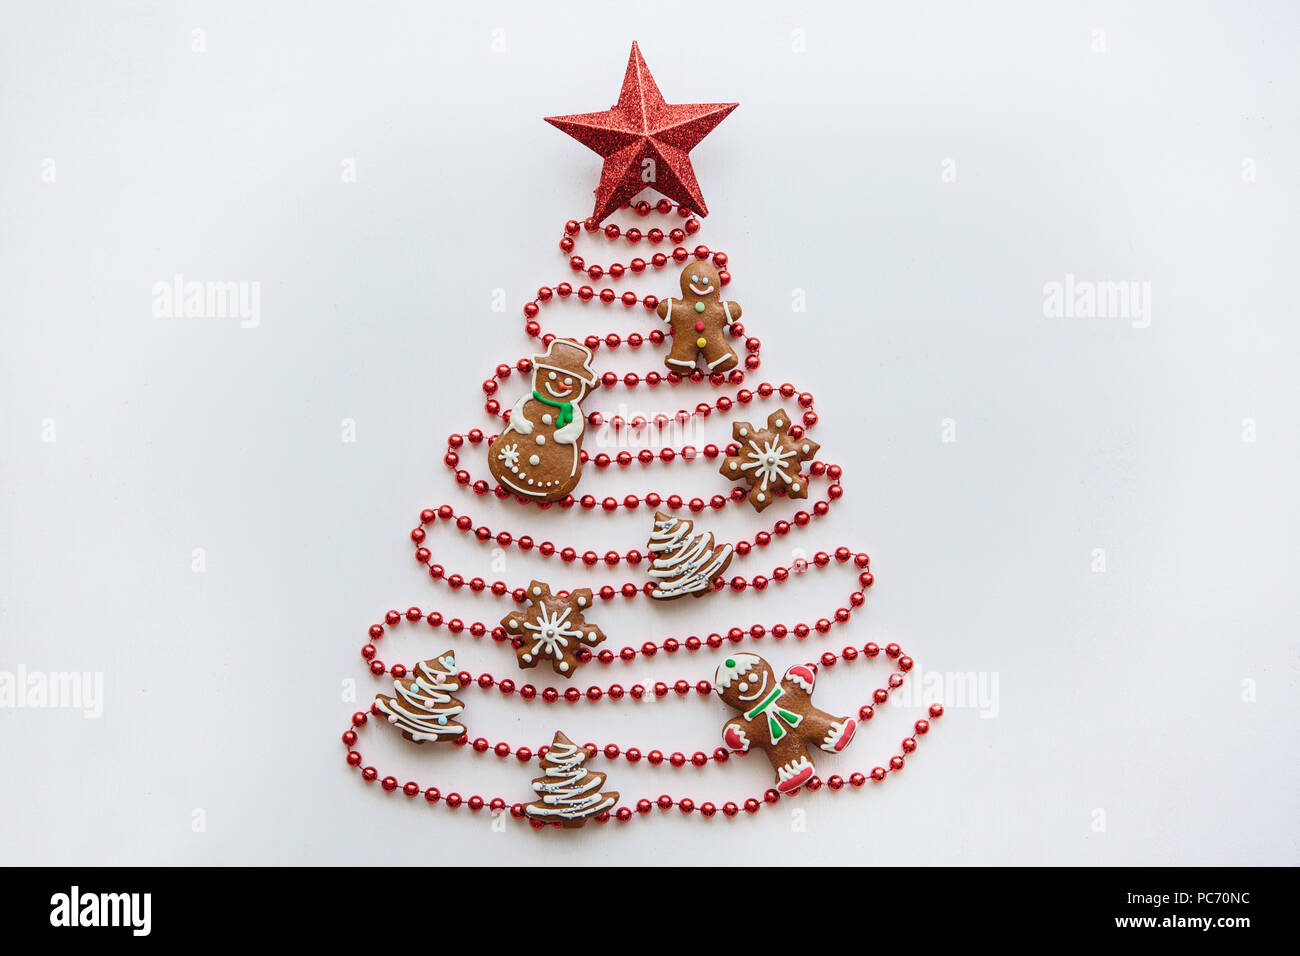 creative idea in minimalistic style for christmas or new year themes a christmas tree made of beads decorated with ginger cookies and a star on top